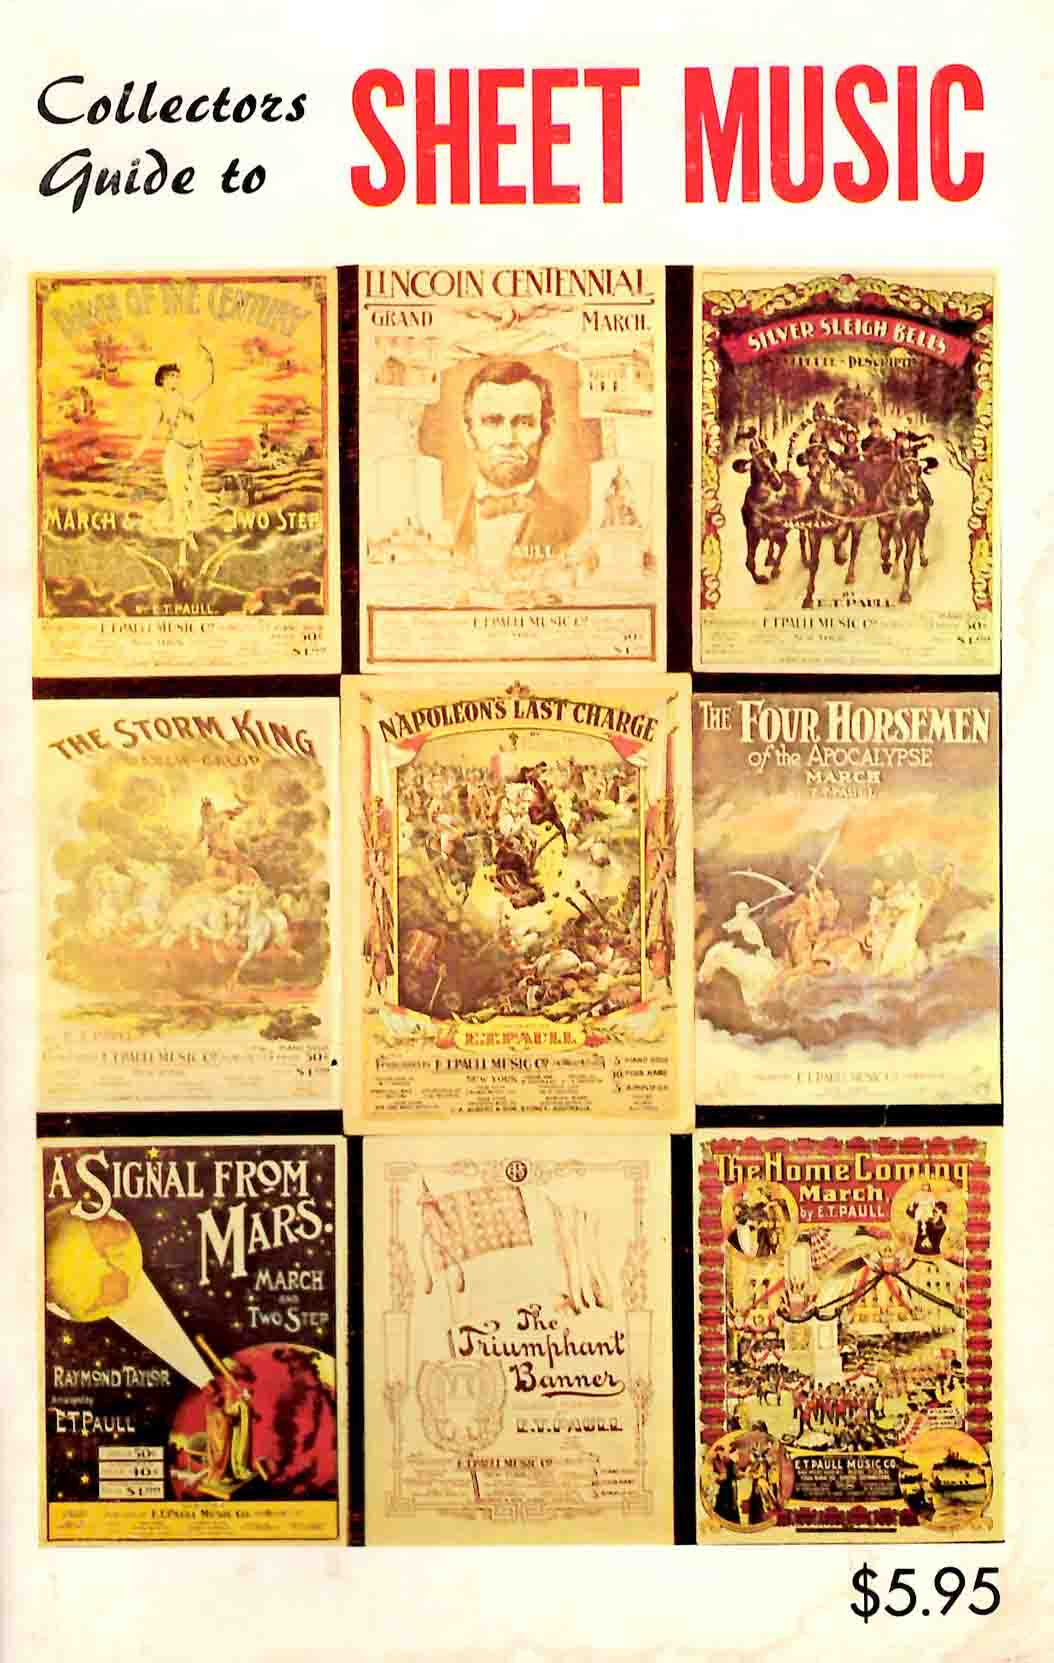 Collectors guside to sheet music